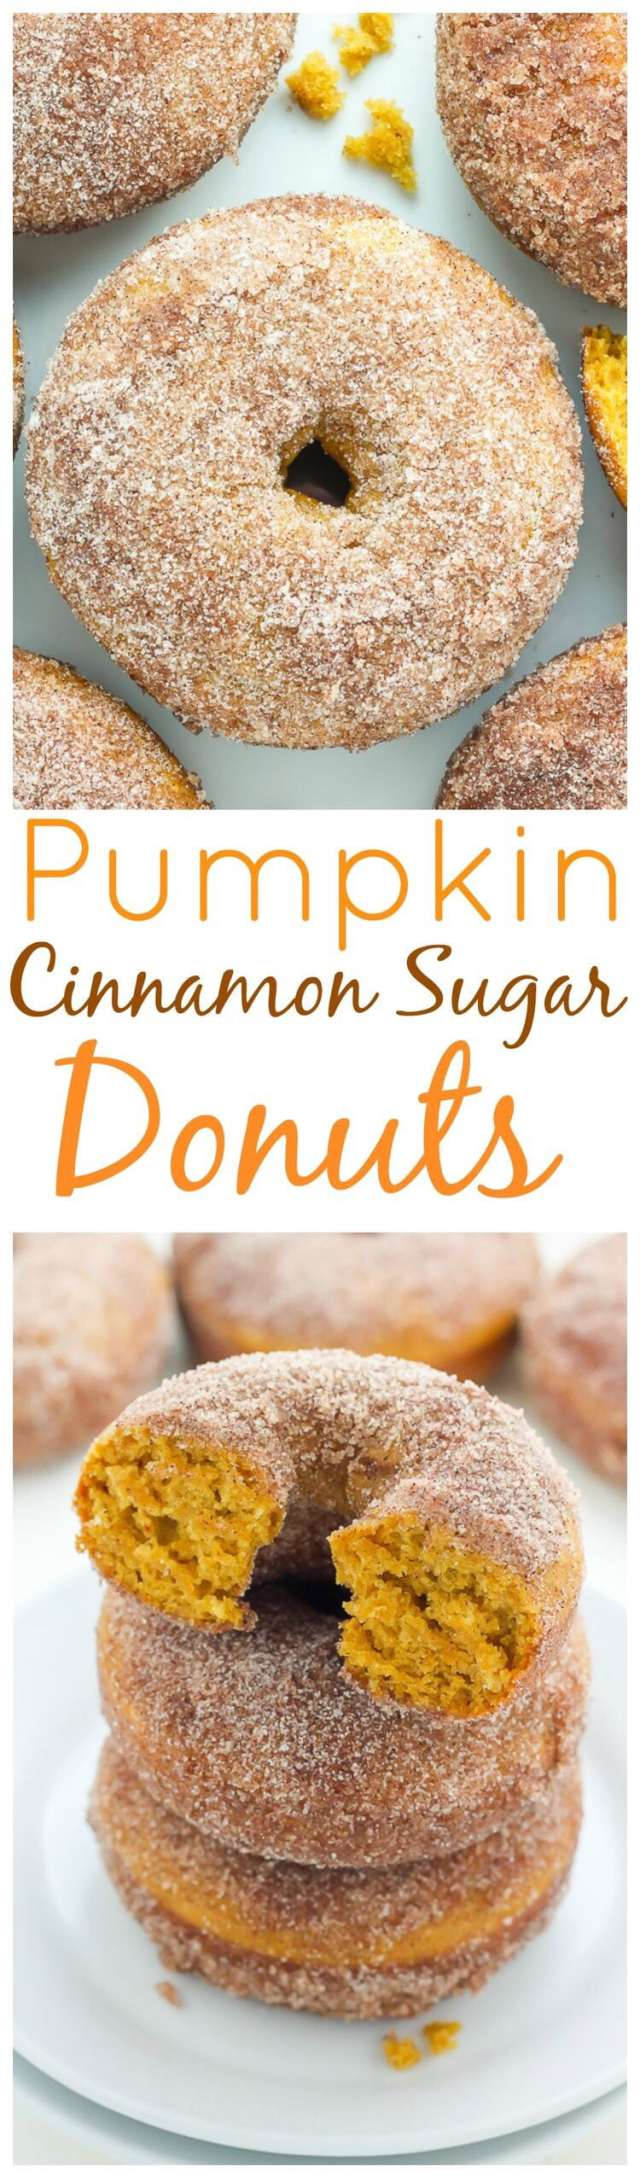 Pumpkin Spice Recipes: Pumpkin Cinnamon Sugar Donuts